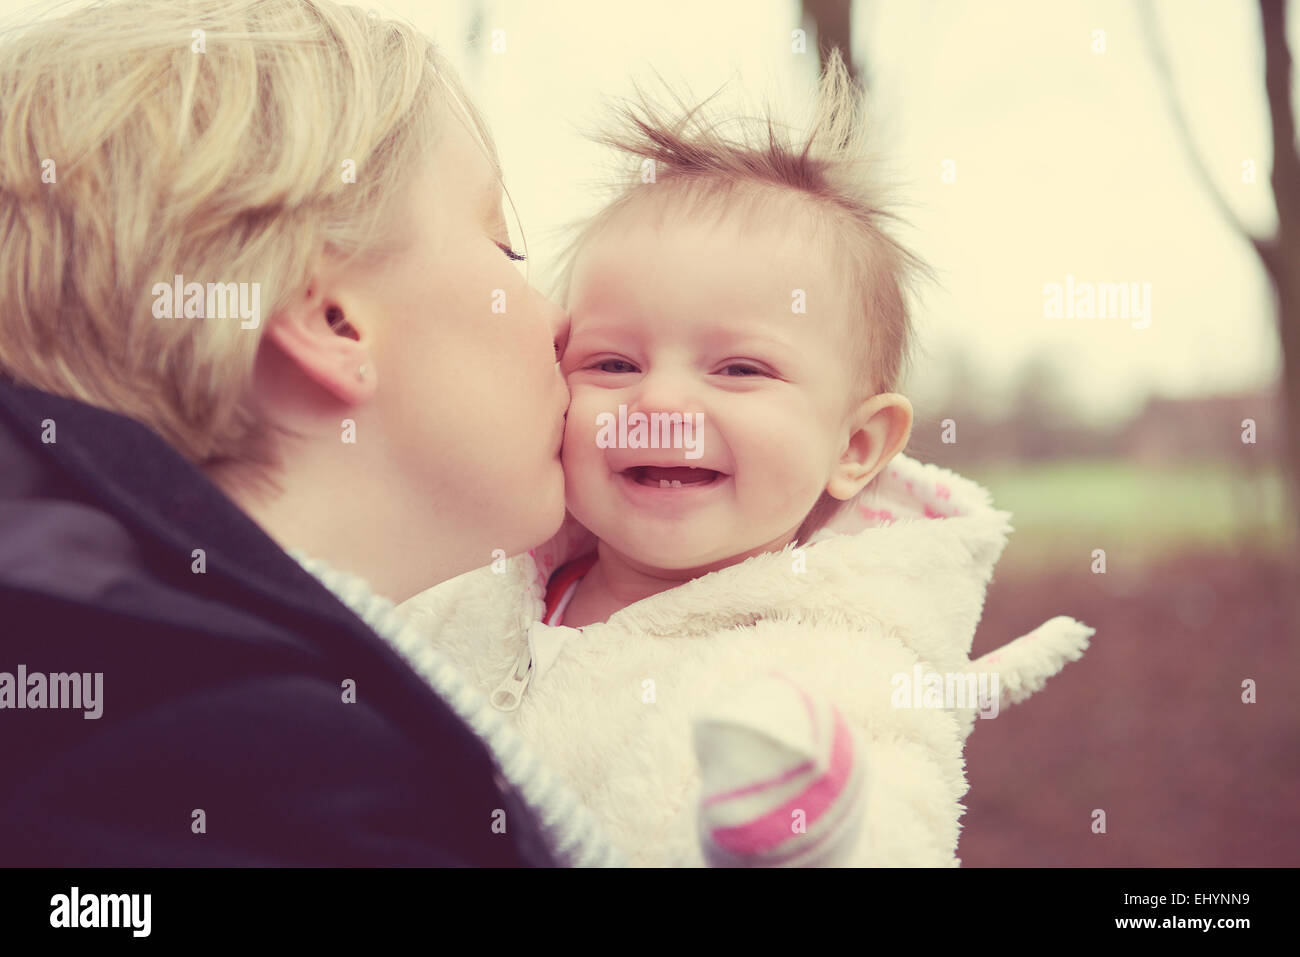 Mother kissing baby girl - Stock Image